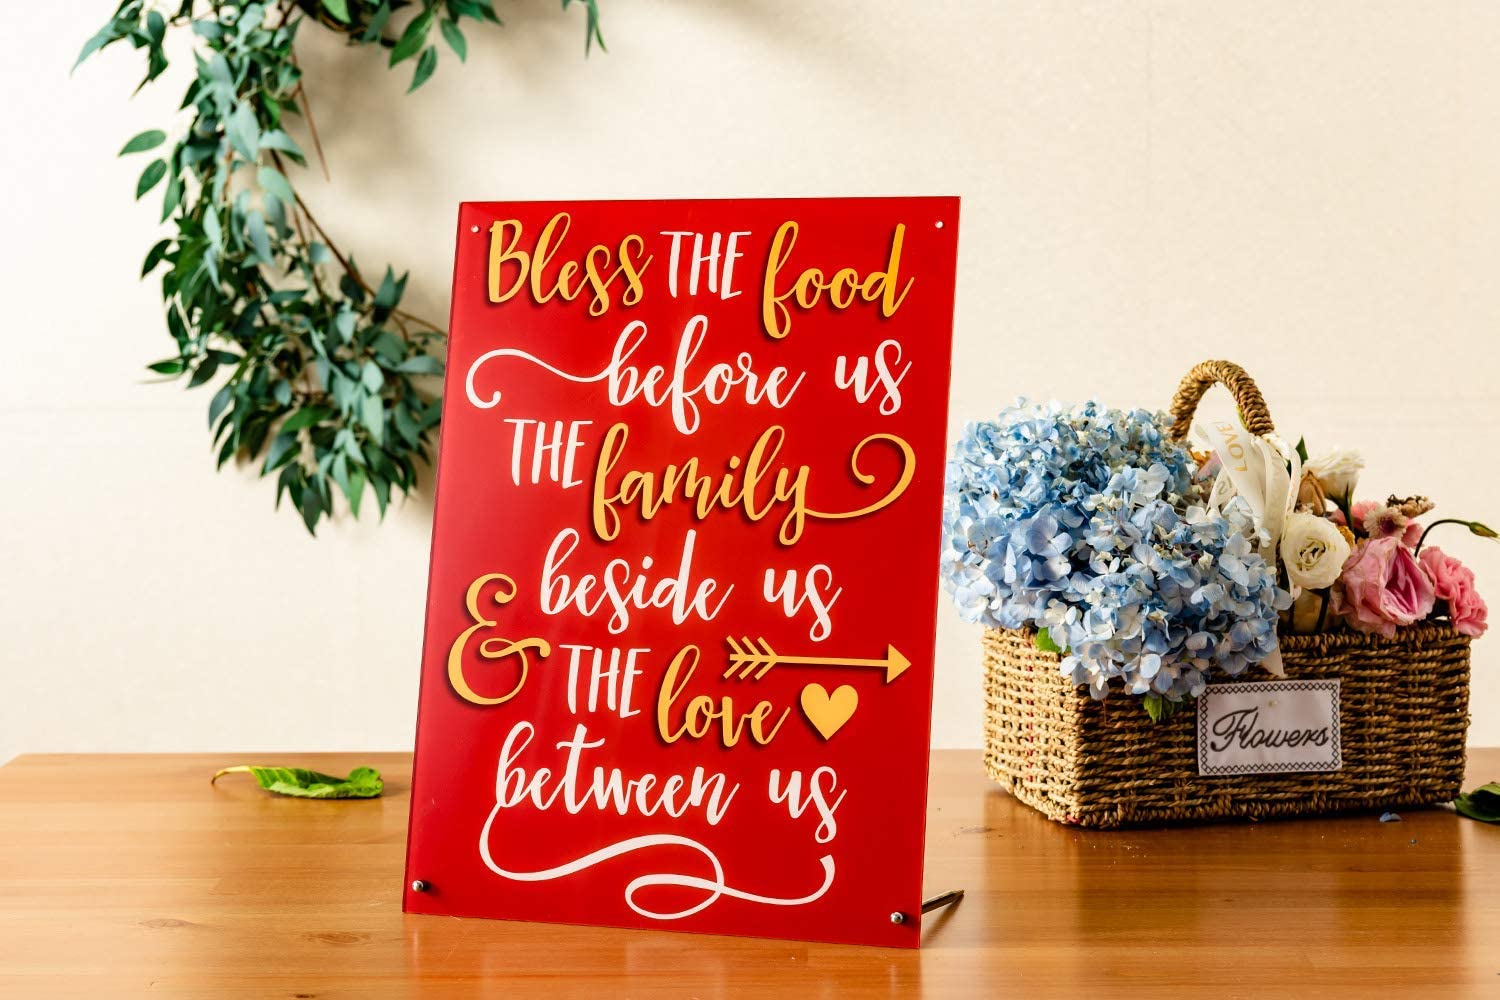 "Calculs Thanksgiving Home Decoration 16.5""x12.2"" Acrylic Elegant Signs 'Bless The Food Before us.' for Holiday Décor Wall Art Table Plaques"